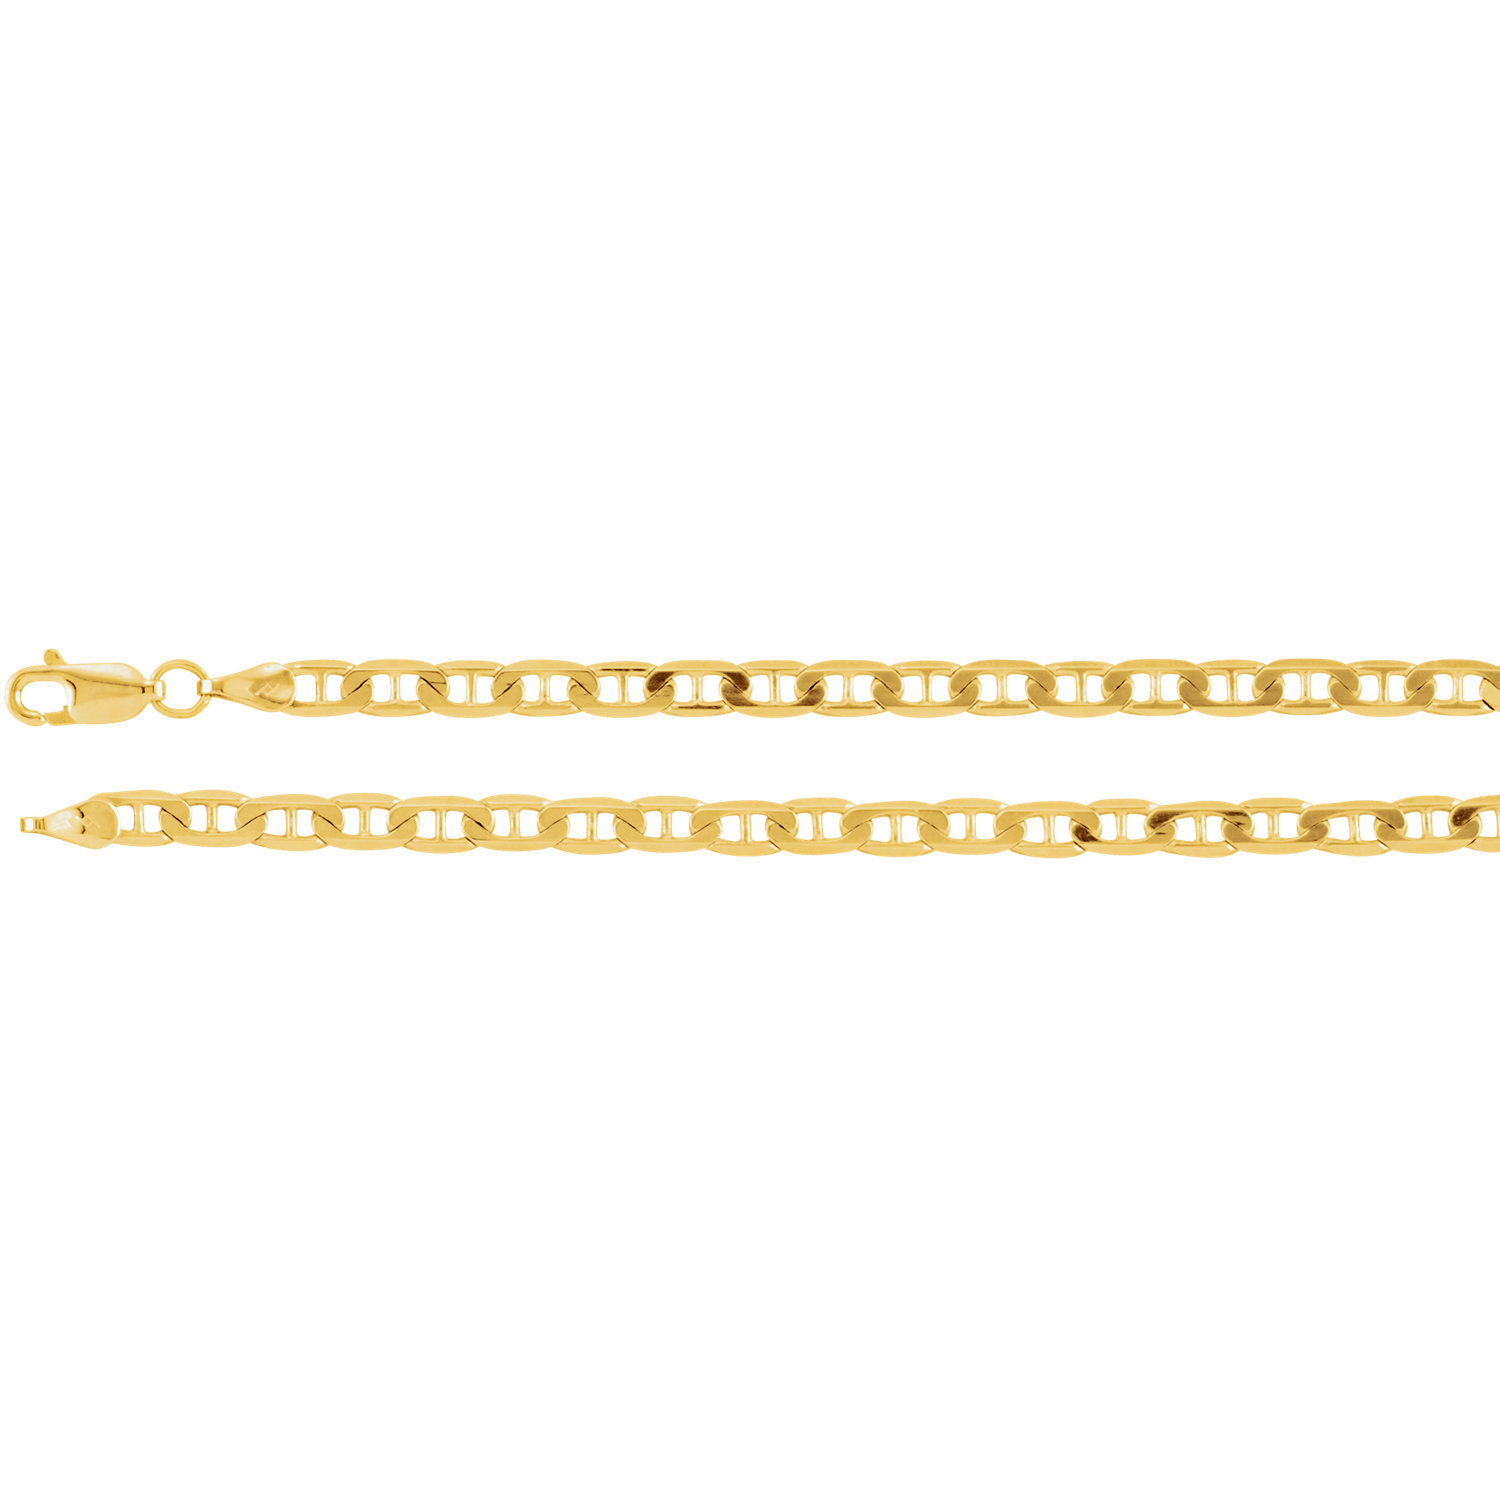 14K Yellow Solid Anchor Chain, 3.5 mm, with Lobster Clasp, 24 Inches (14.17 grams)